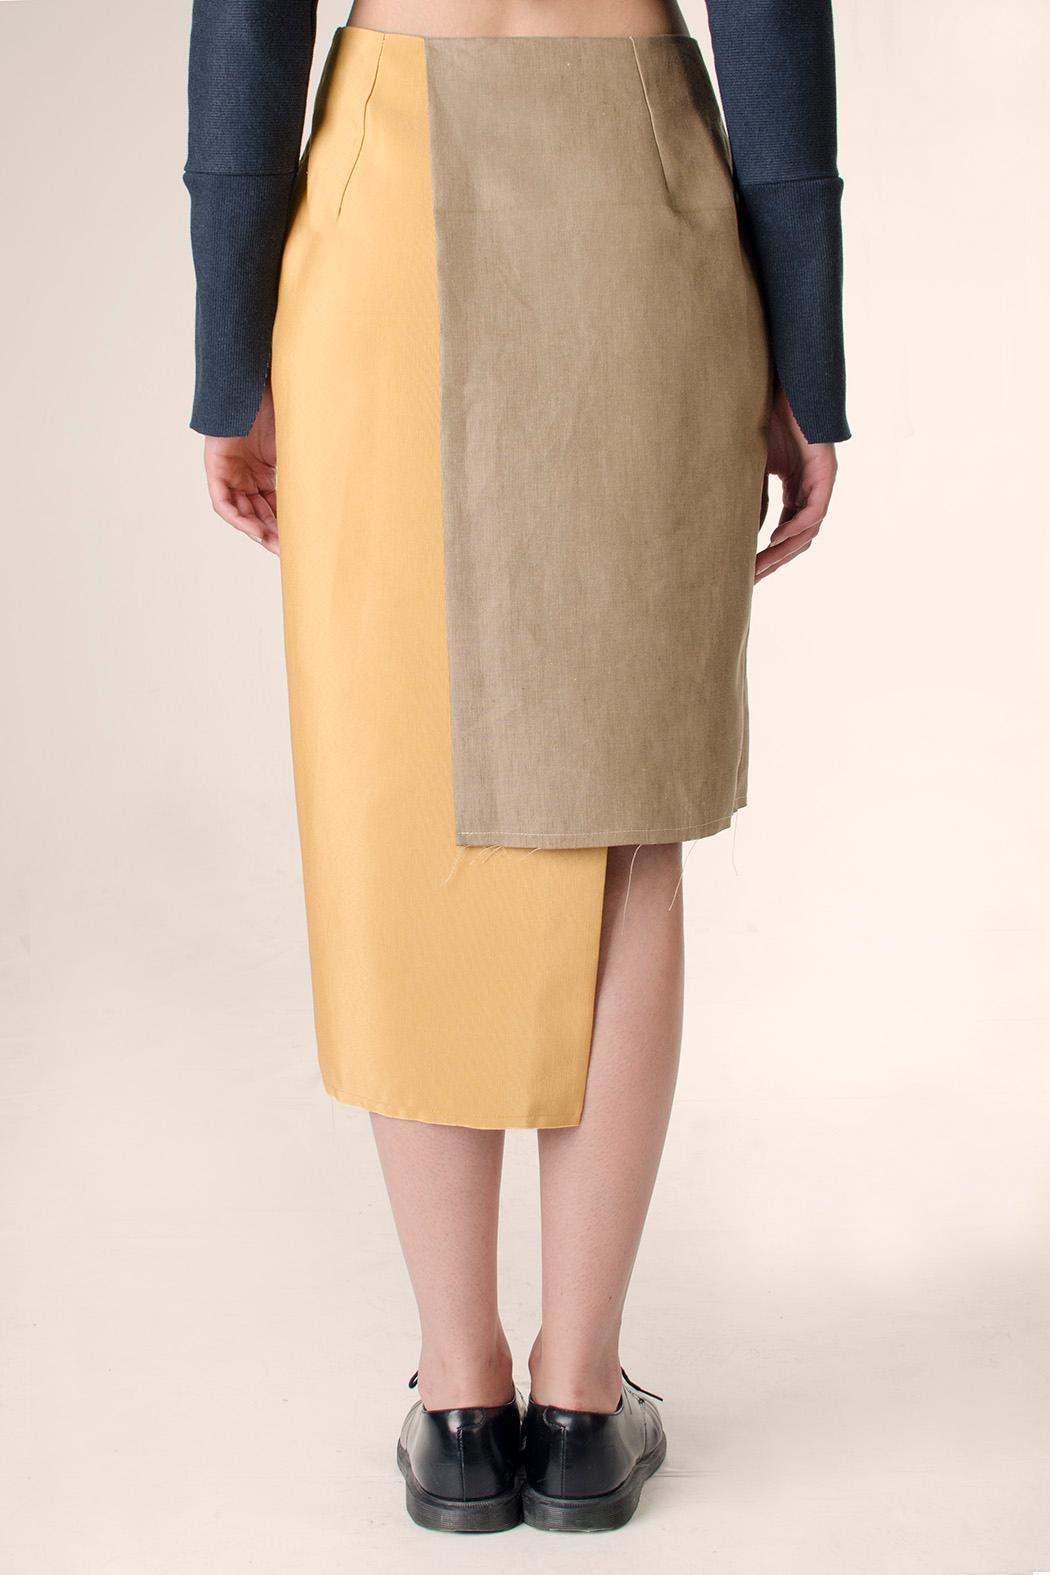 NOD Polonio Wrap Skirt - Side Cropped Image